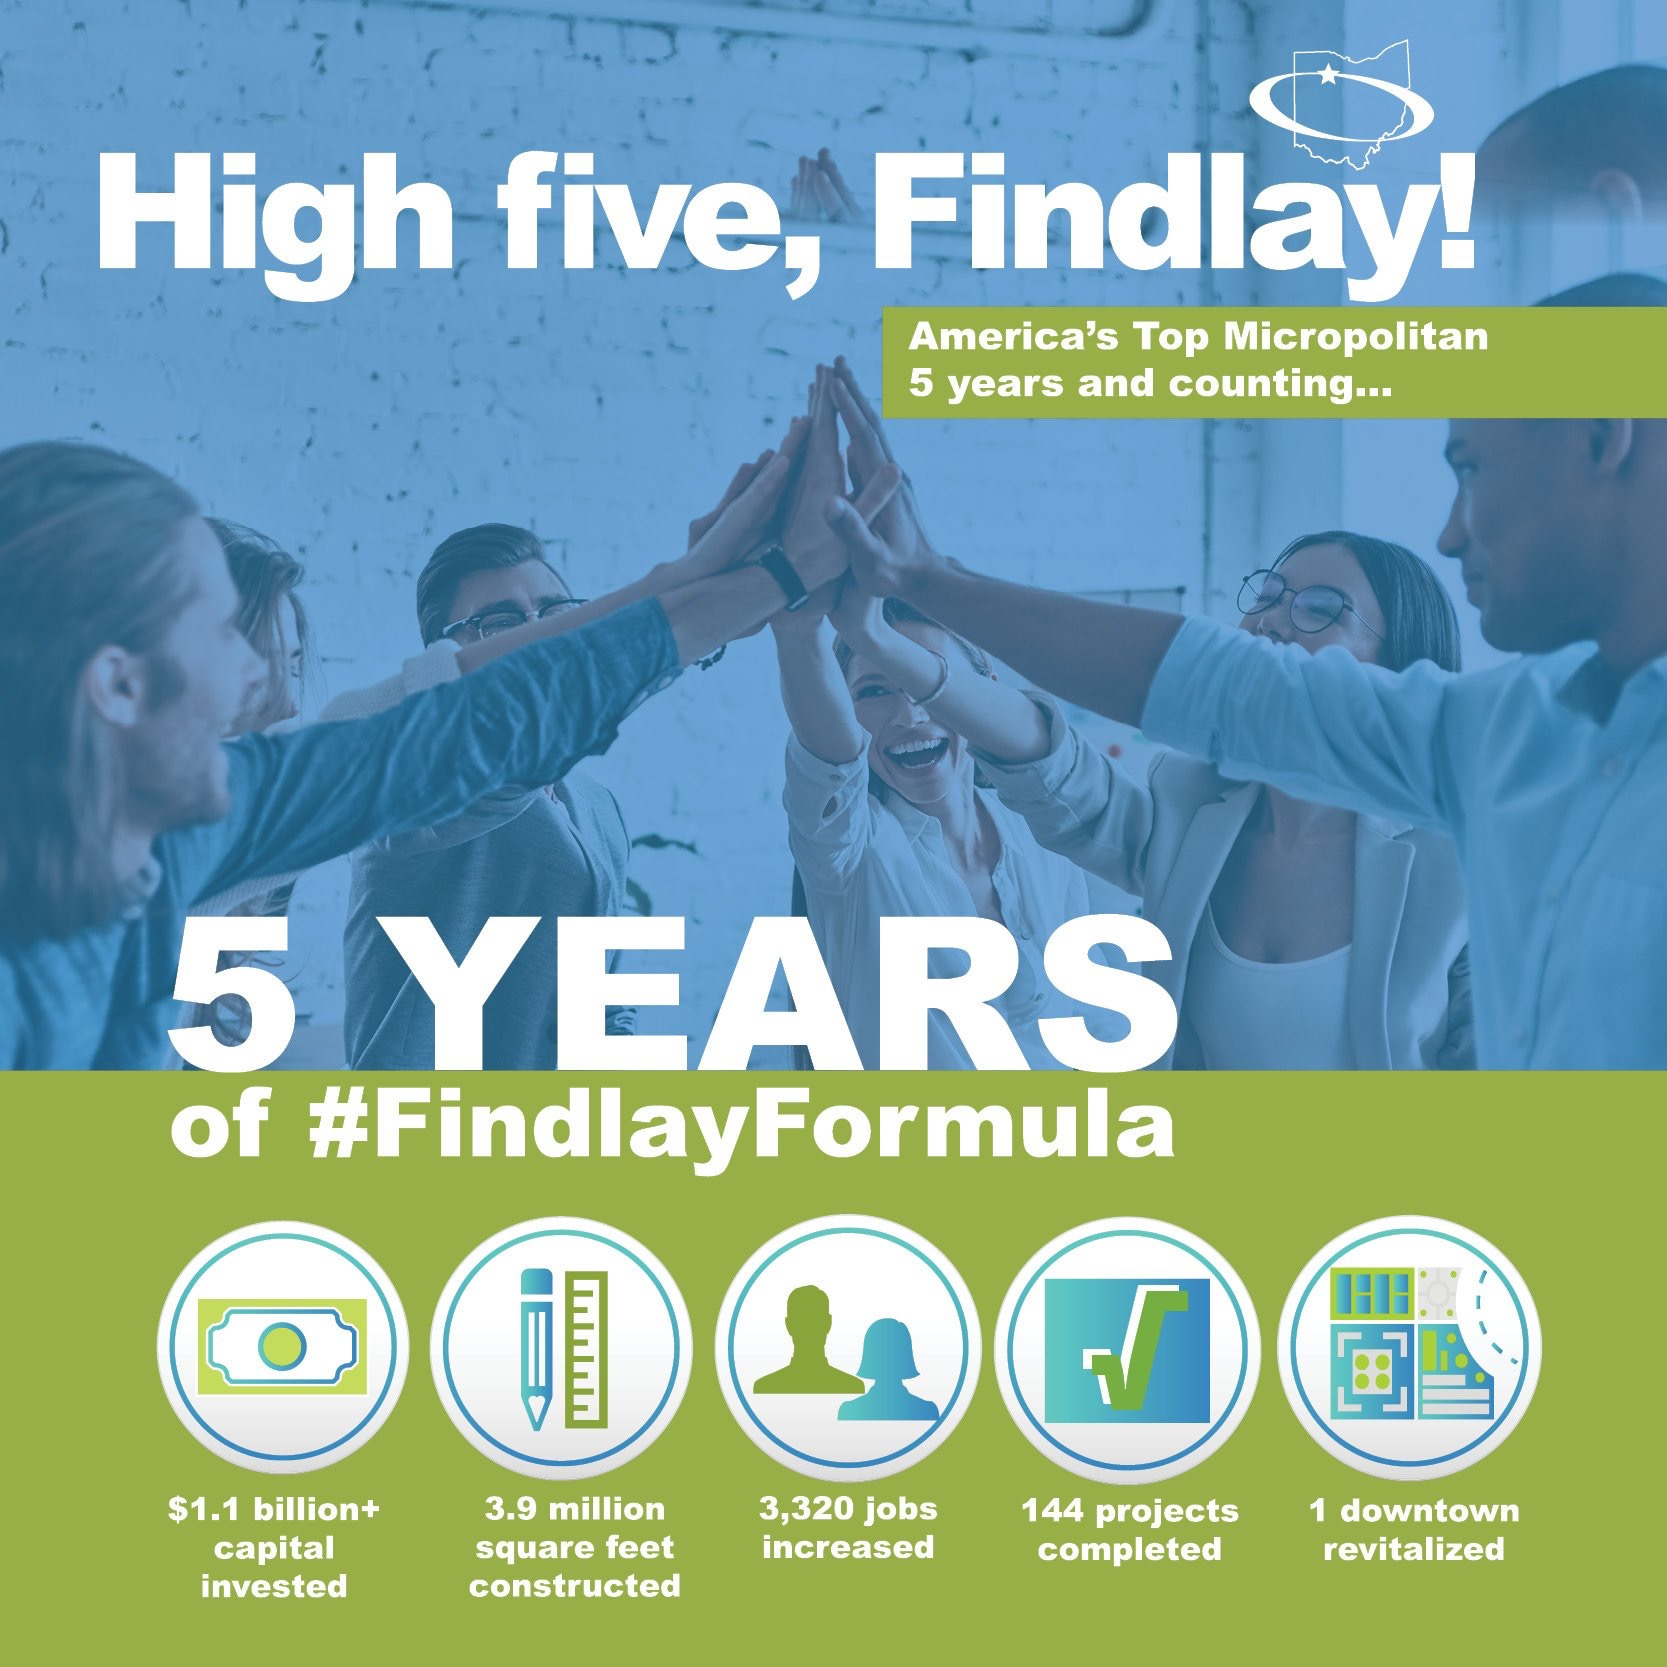 High Five Findlay